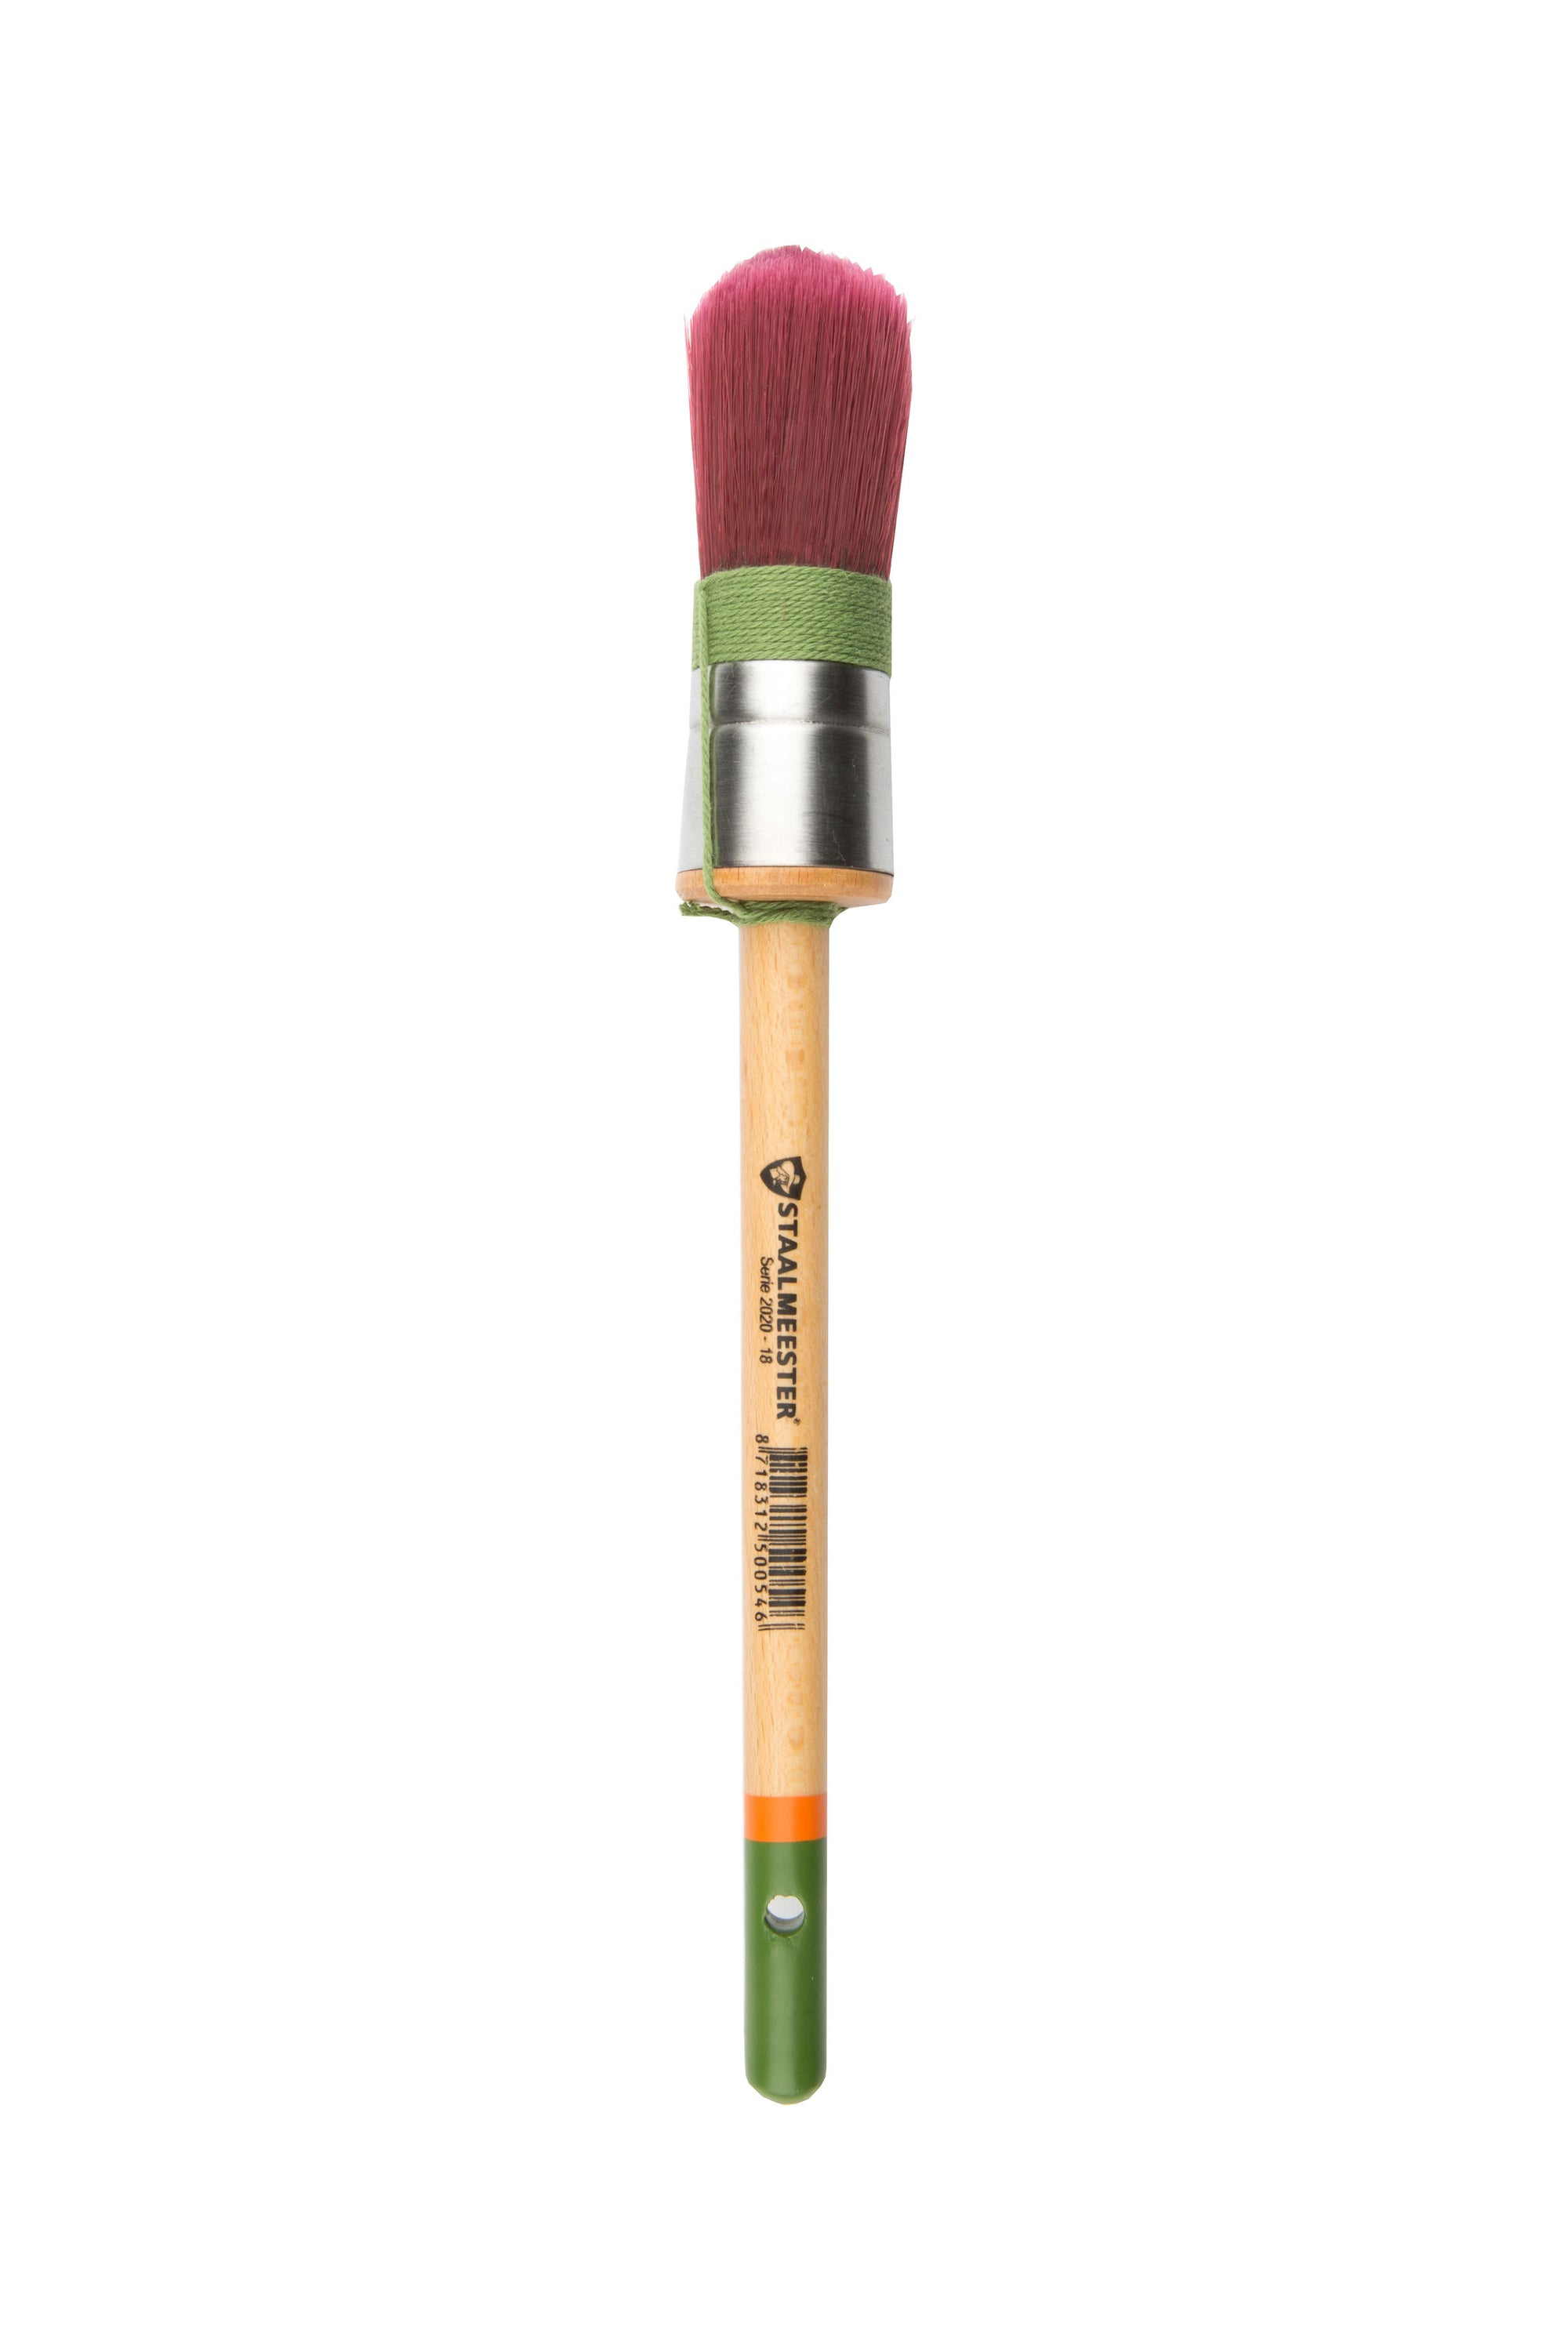 Staalmeester 100% Synthetic Bristle Paint Brush at Farmhouse Inspired